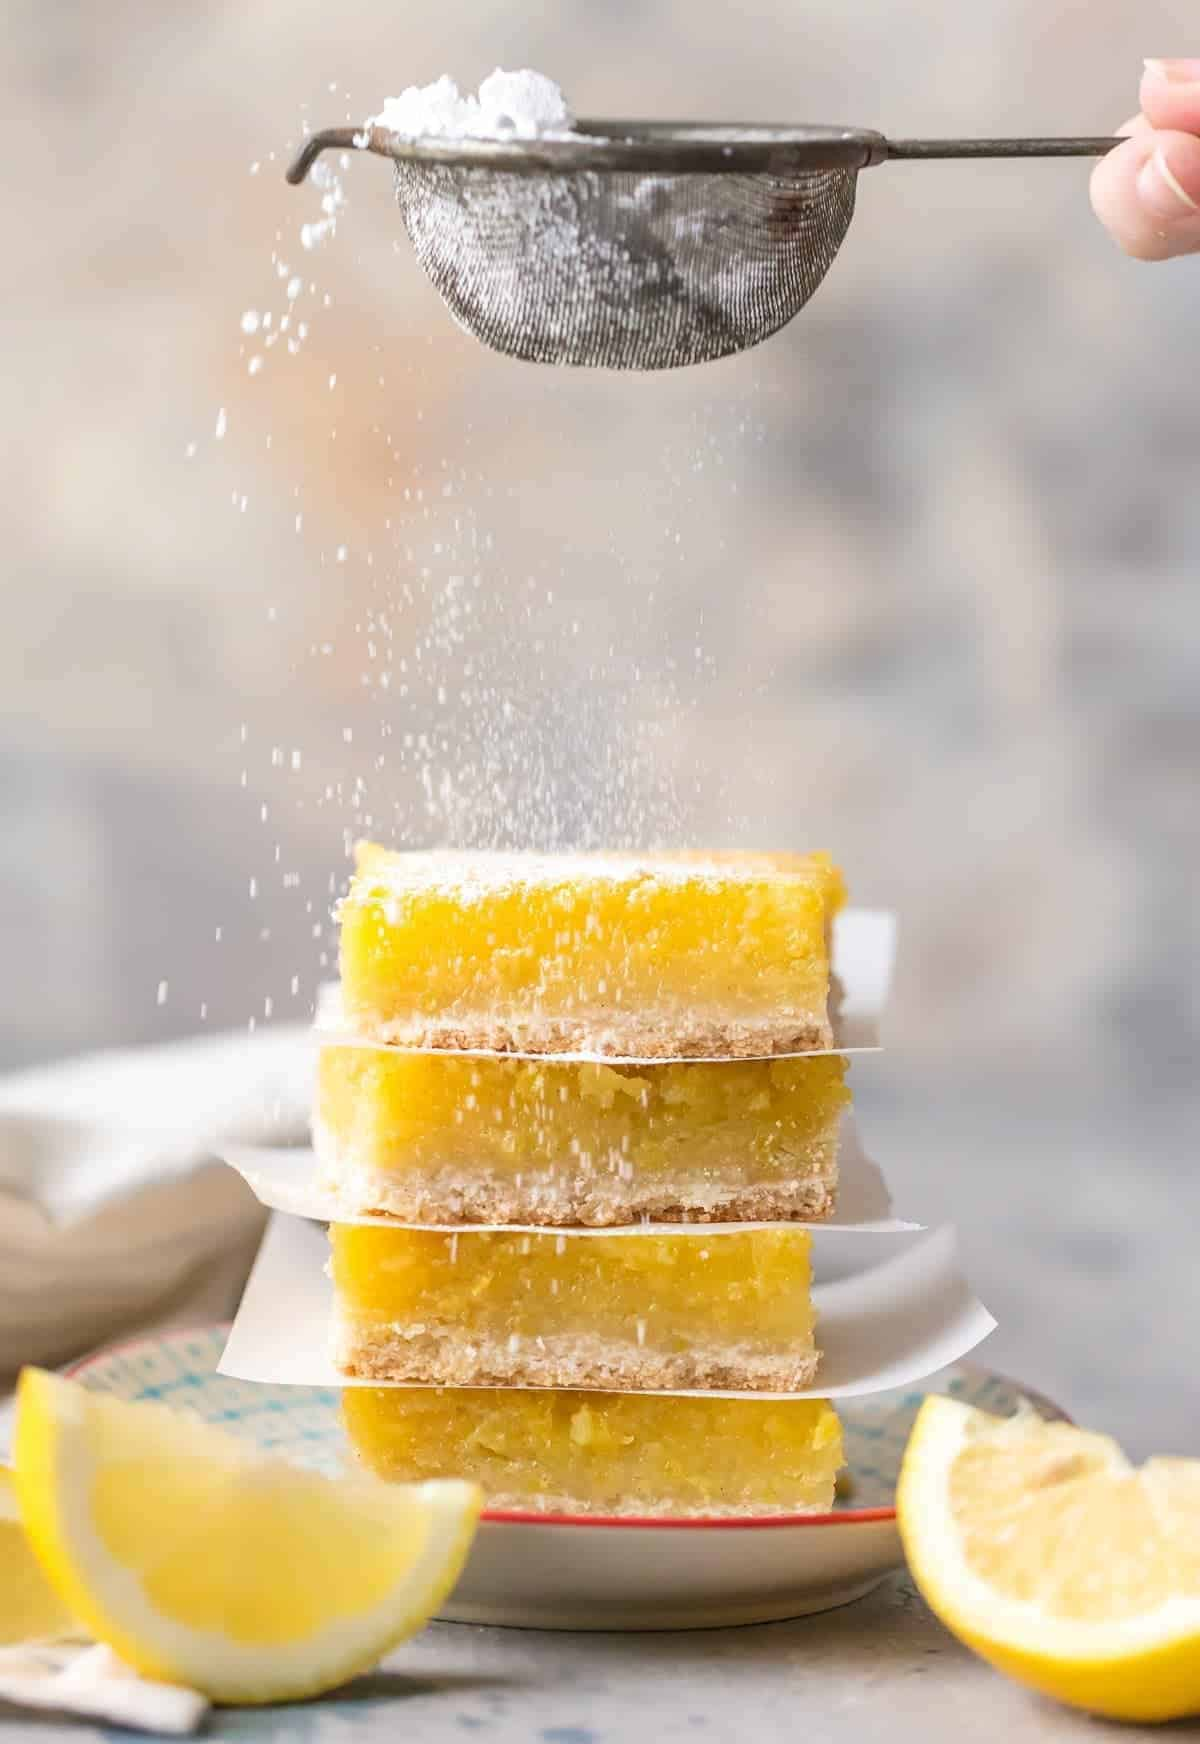 Gluten Free lemon Bars by The Cookie Rookie | Gluten free recipes the whole family will love!